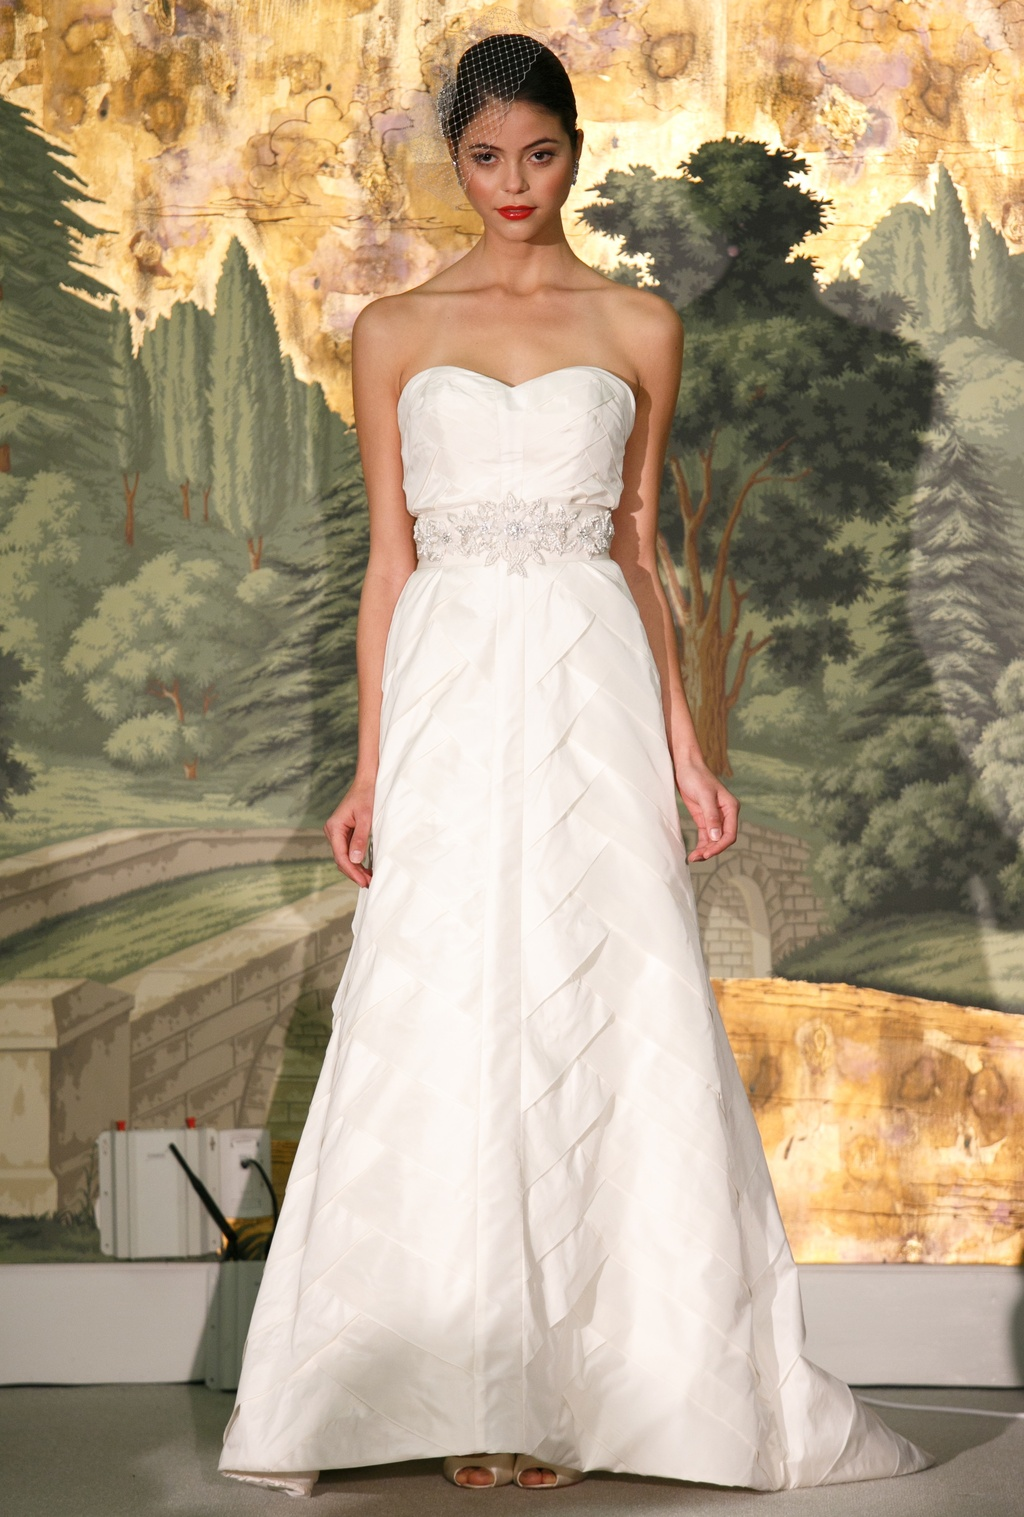 Wedding dress by Anne Barge Spring 2014 Bridal Grenadier